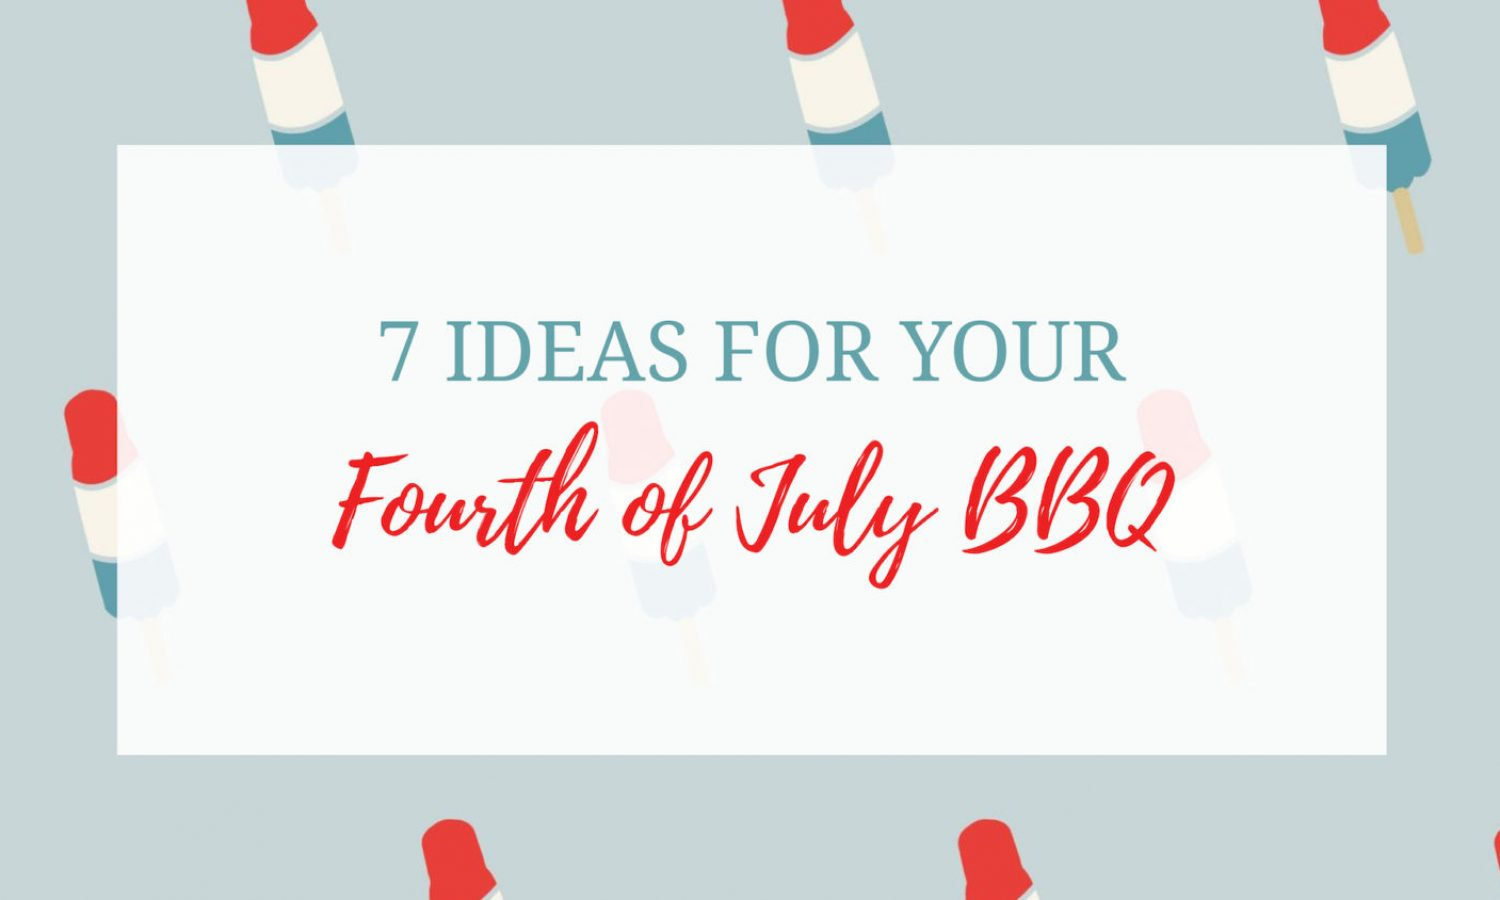 7 Ideas for your fourth of july bbq